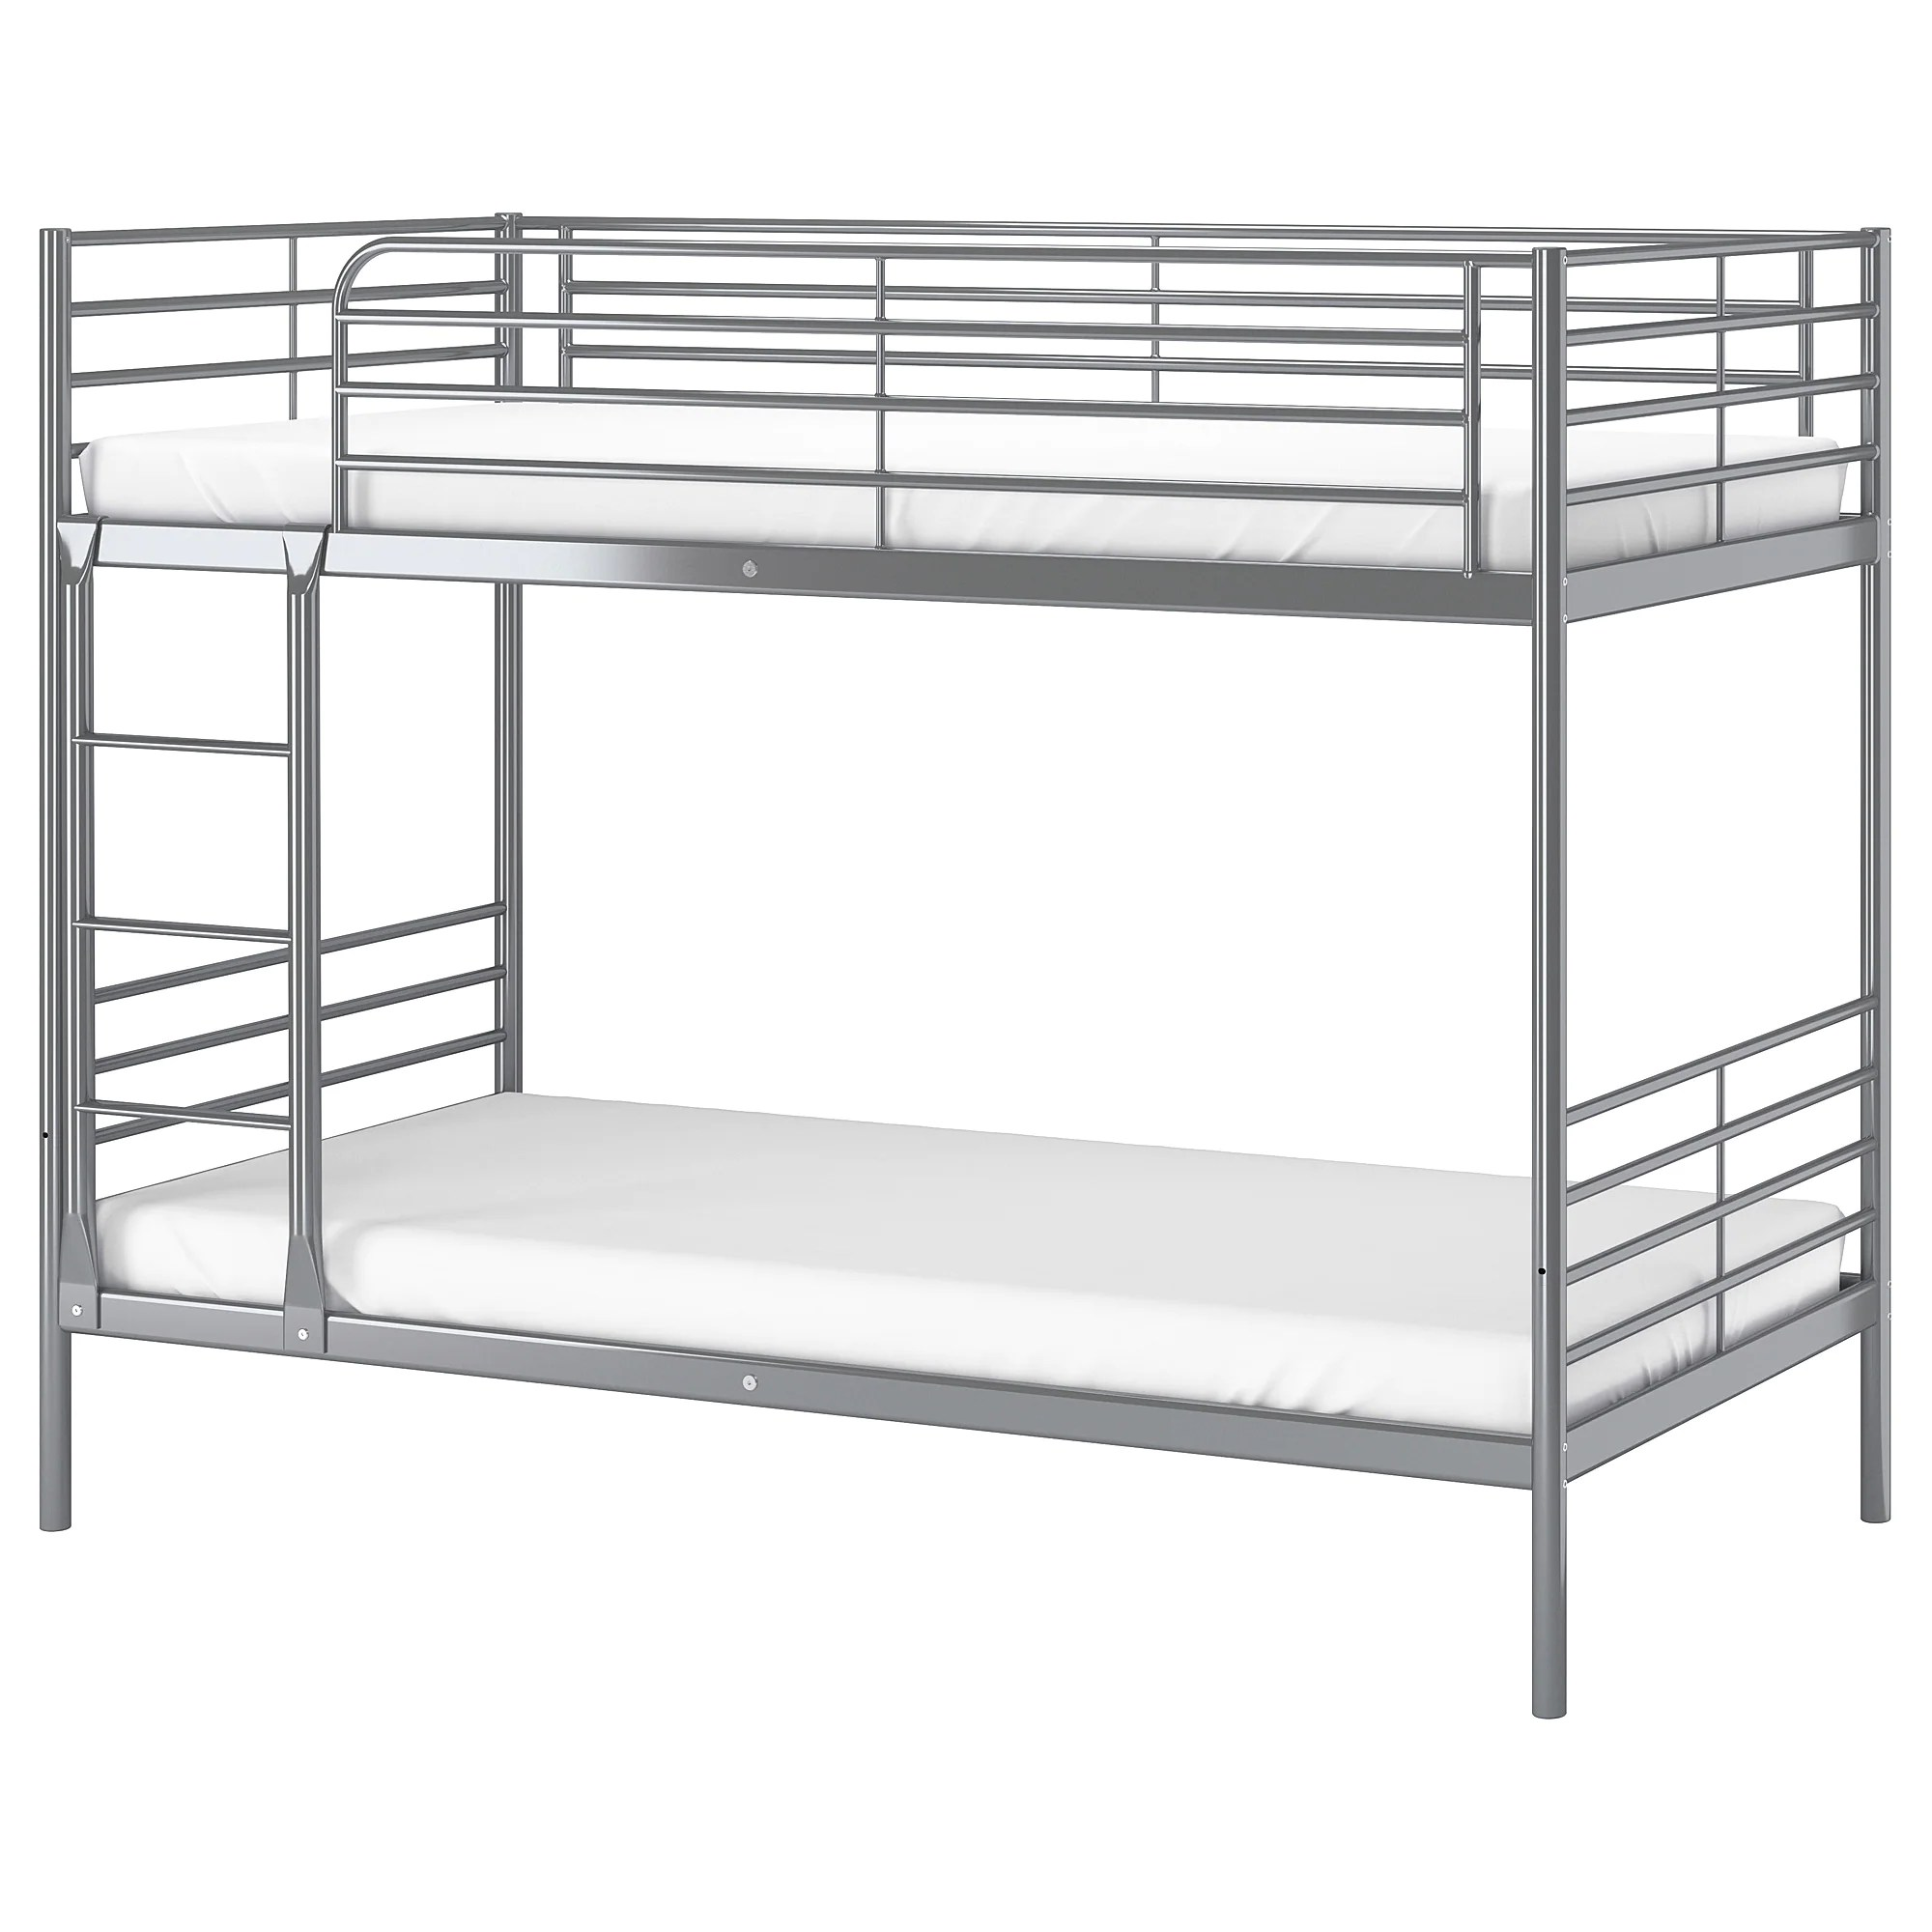 Ikea Iron Bed Bunk Bed Frame SvÄrta Silver Colour